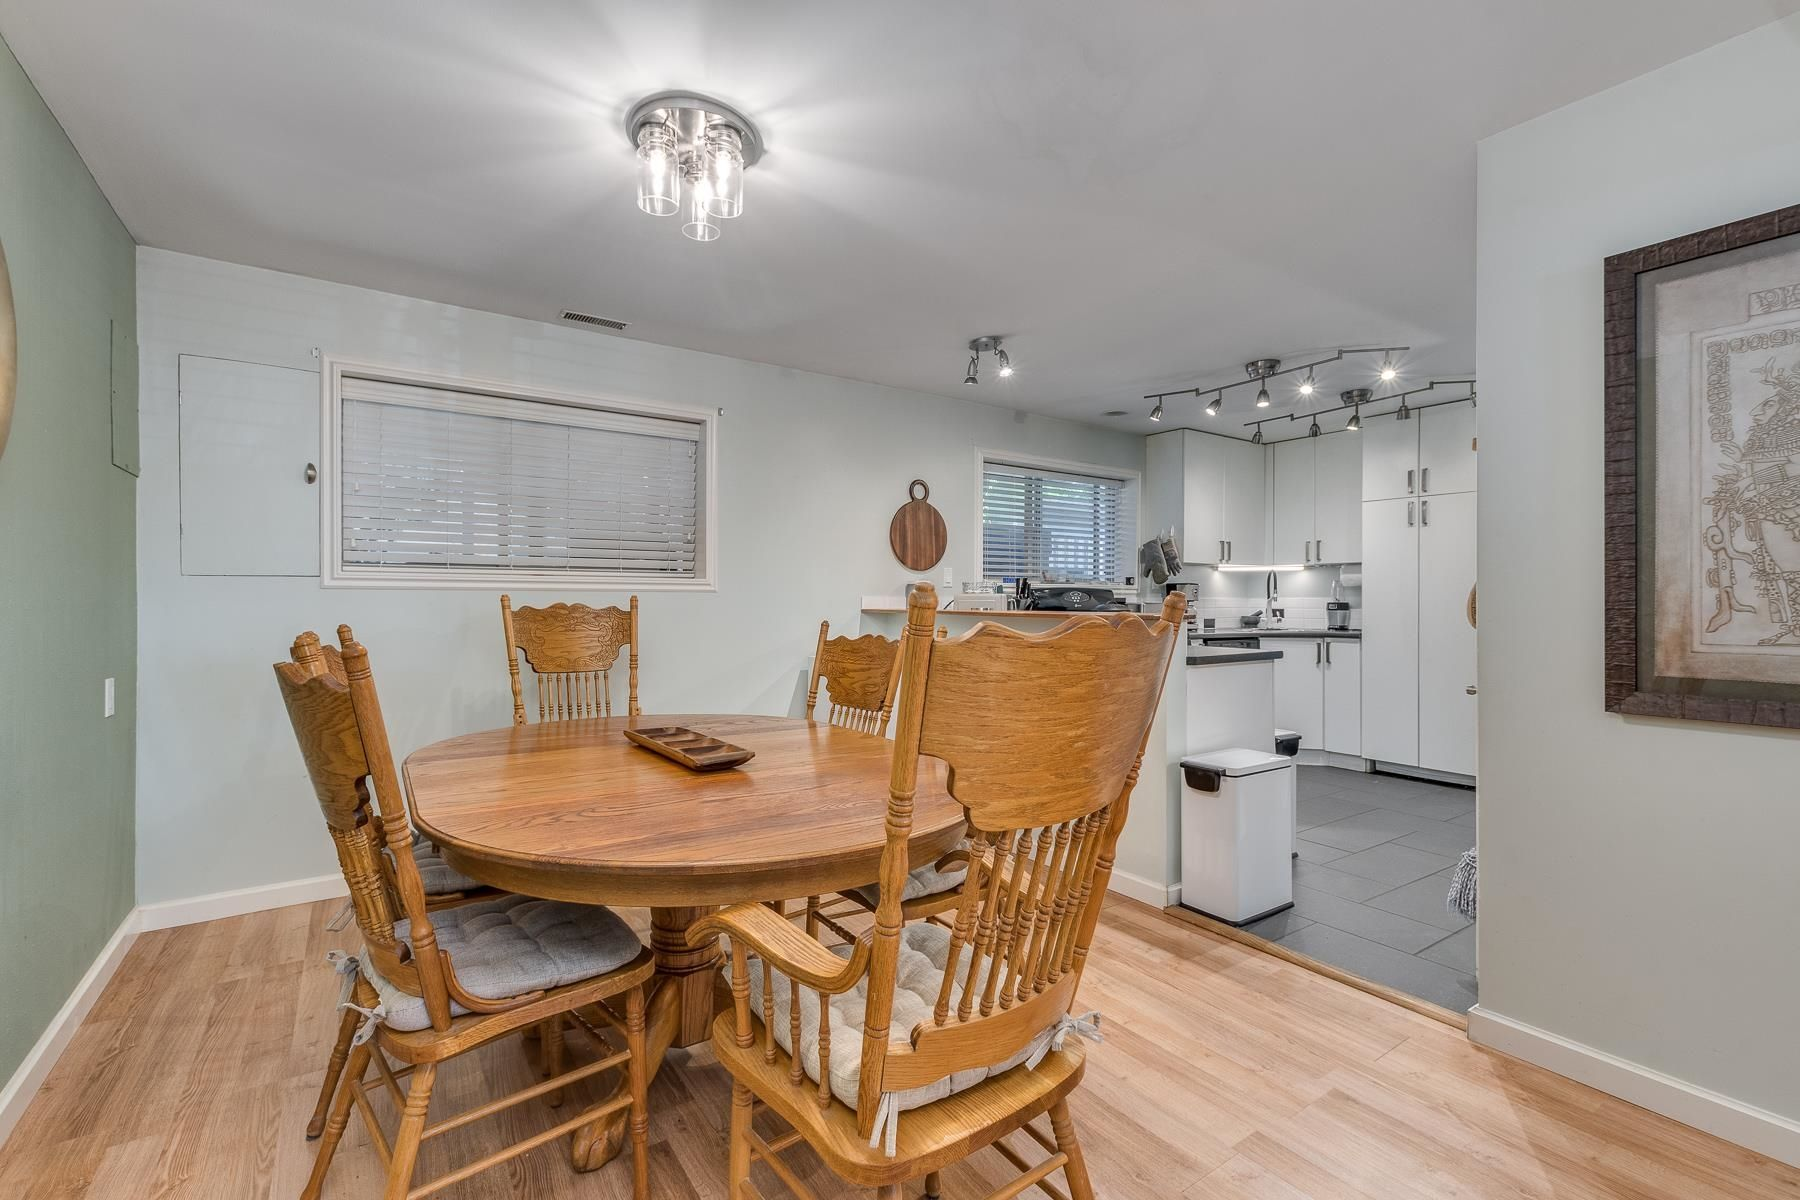 Photo 25: Photos: 3671 SOMERSET Street in Port Coquitlam: Lincoln Park PQ House for sale : MLS®# R2610216